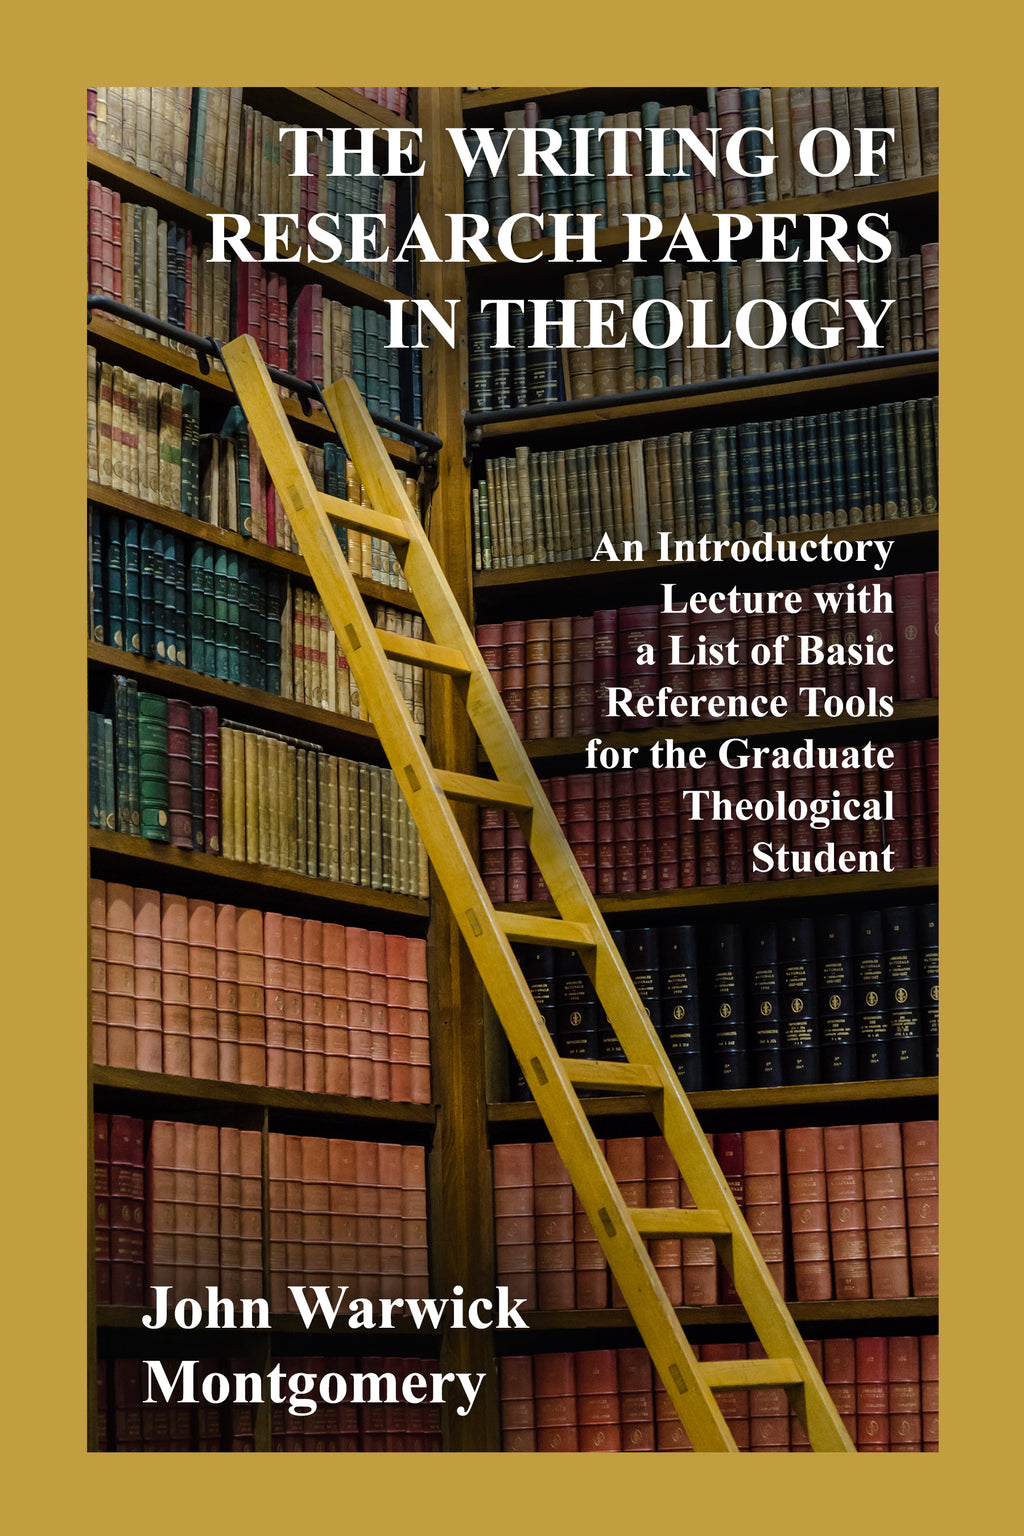 The Writing of Research Papers In Theology: An Introductory Lecture with a List of Basic Reference Tools for the Graduate Theological Student